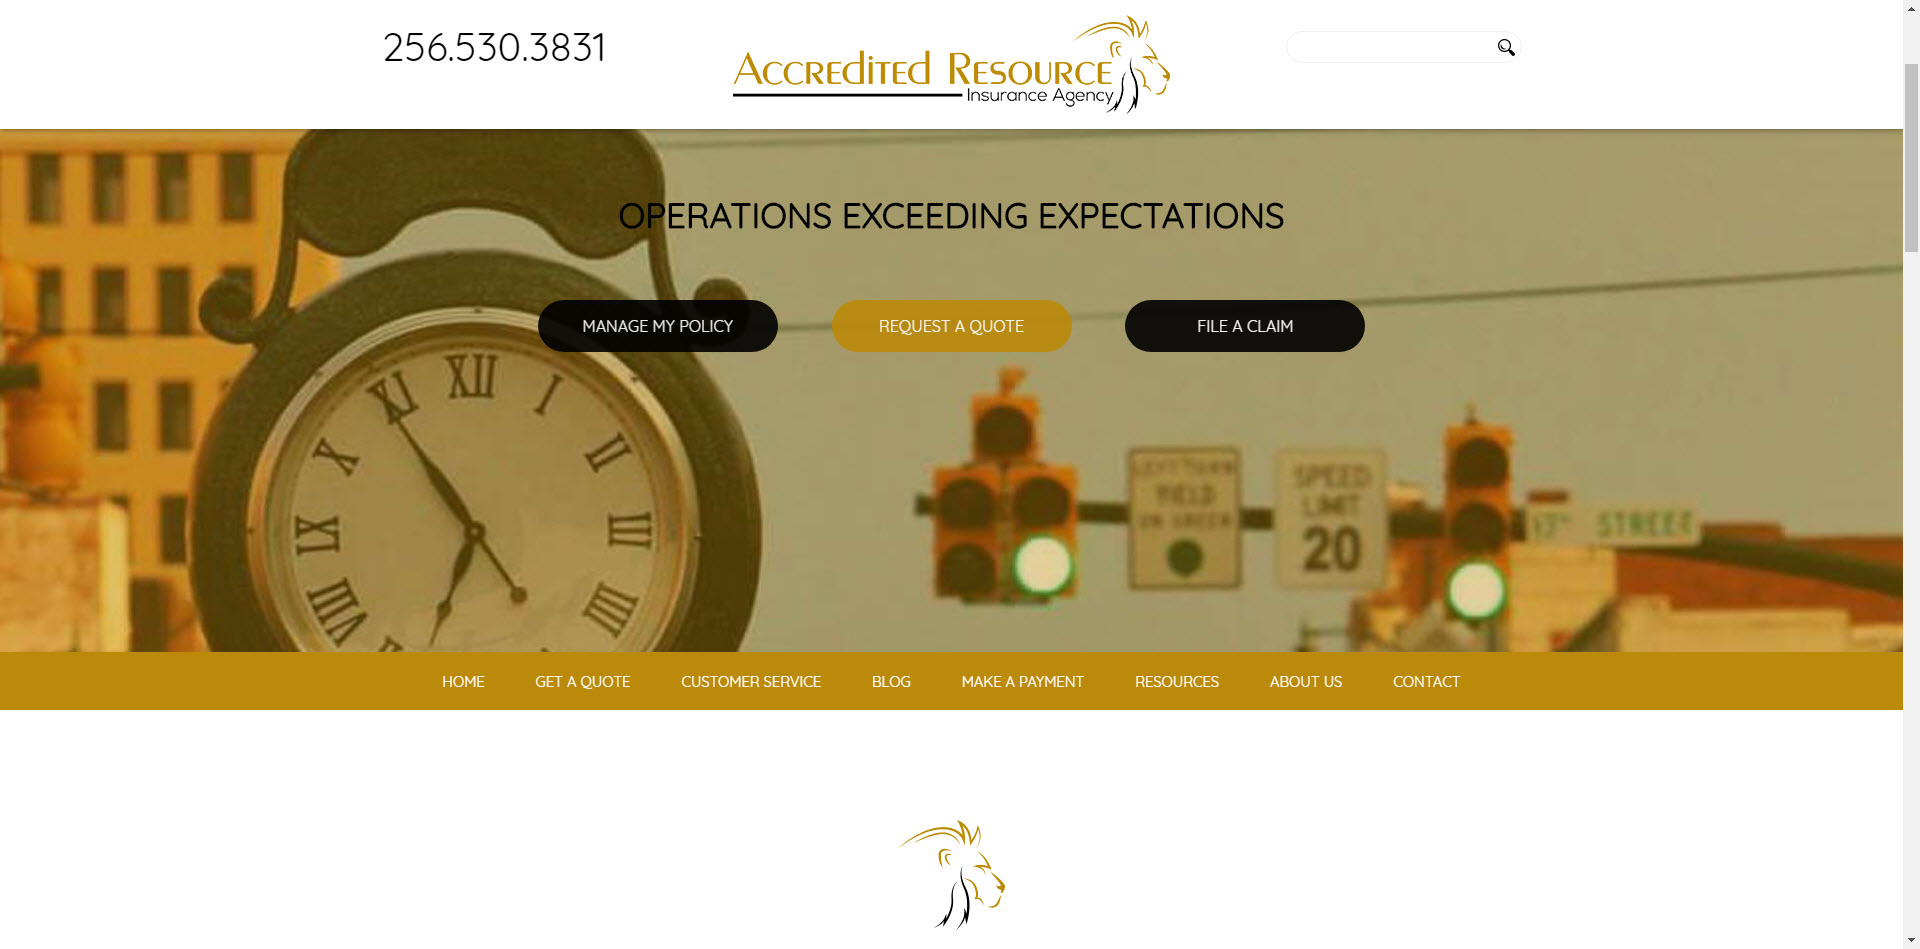 Accredited Resource Insurance Agency screenshot